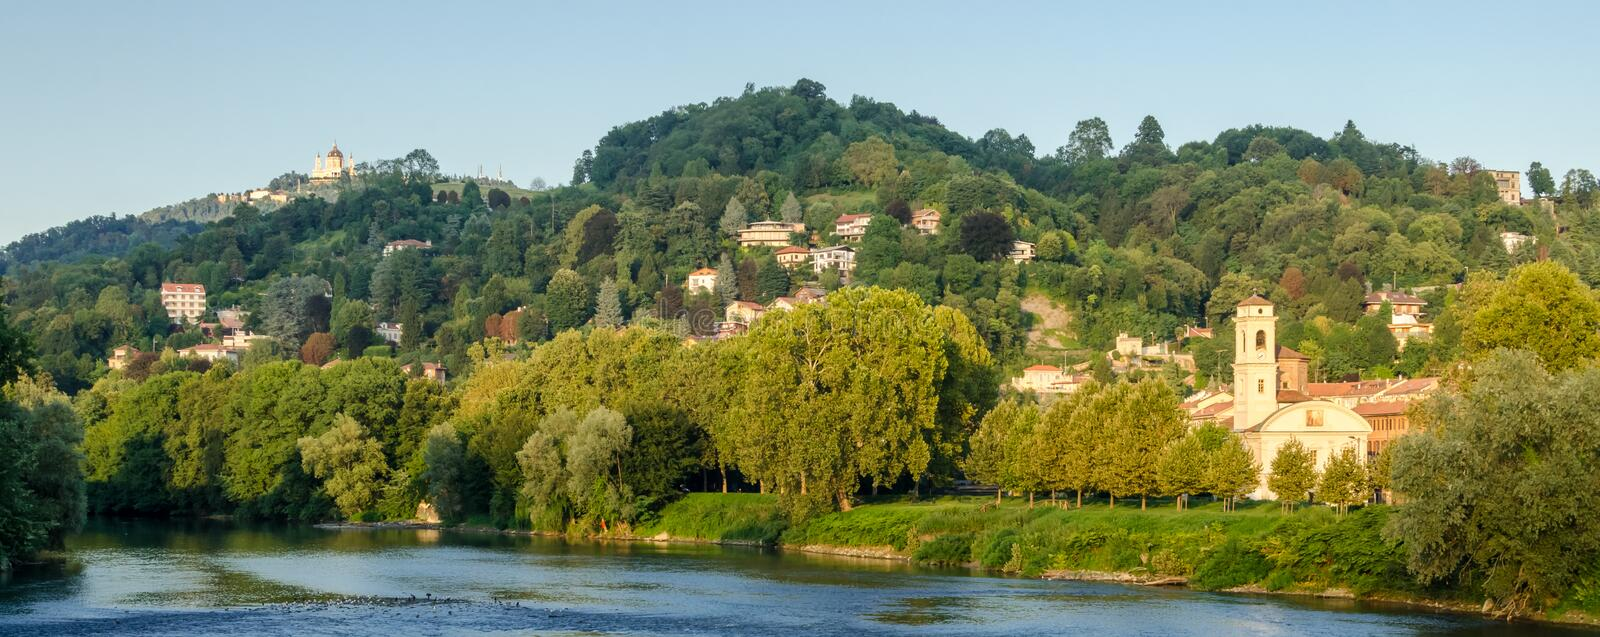 Download Turin (Torino), Panorama With Hills And Po River Stock Photo - Image: 32873122